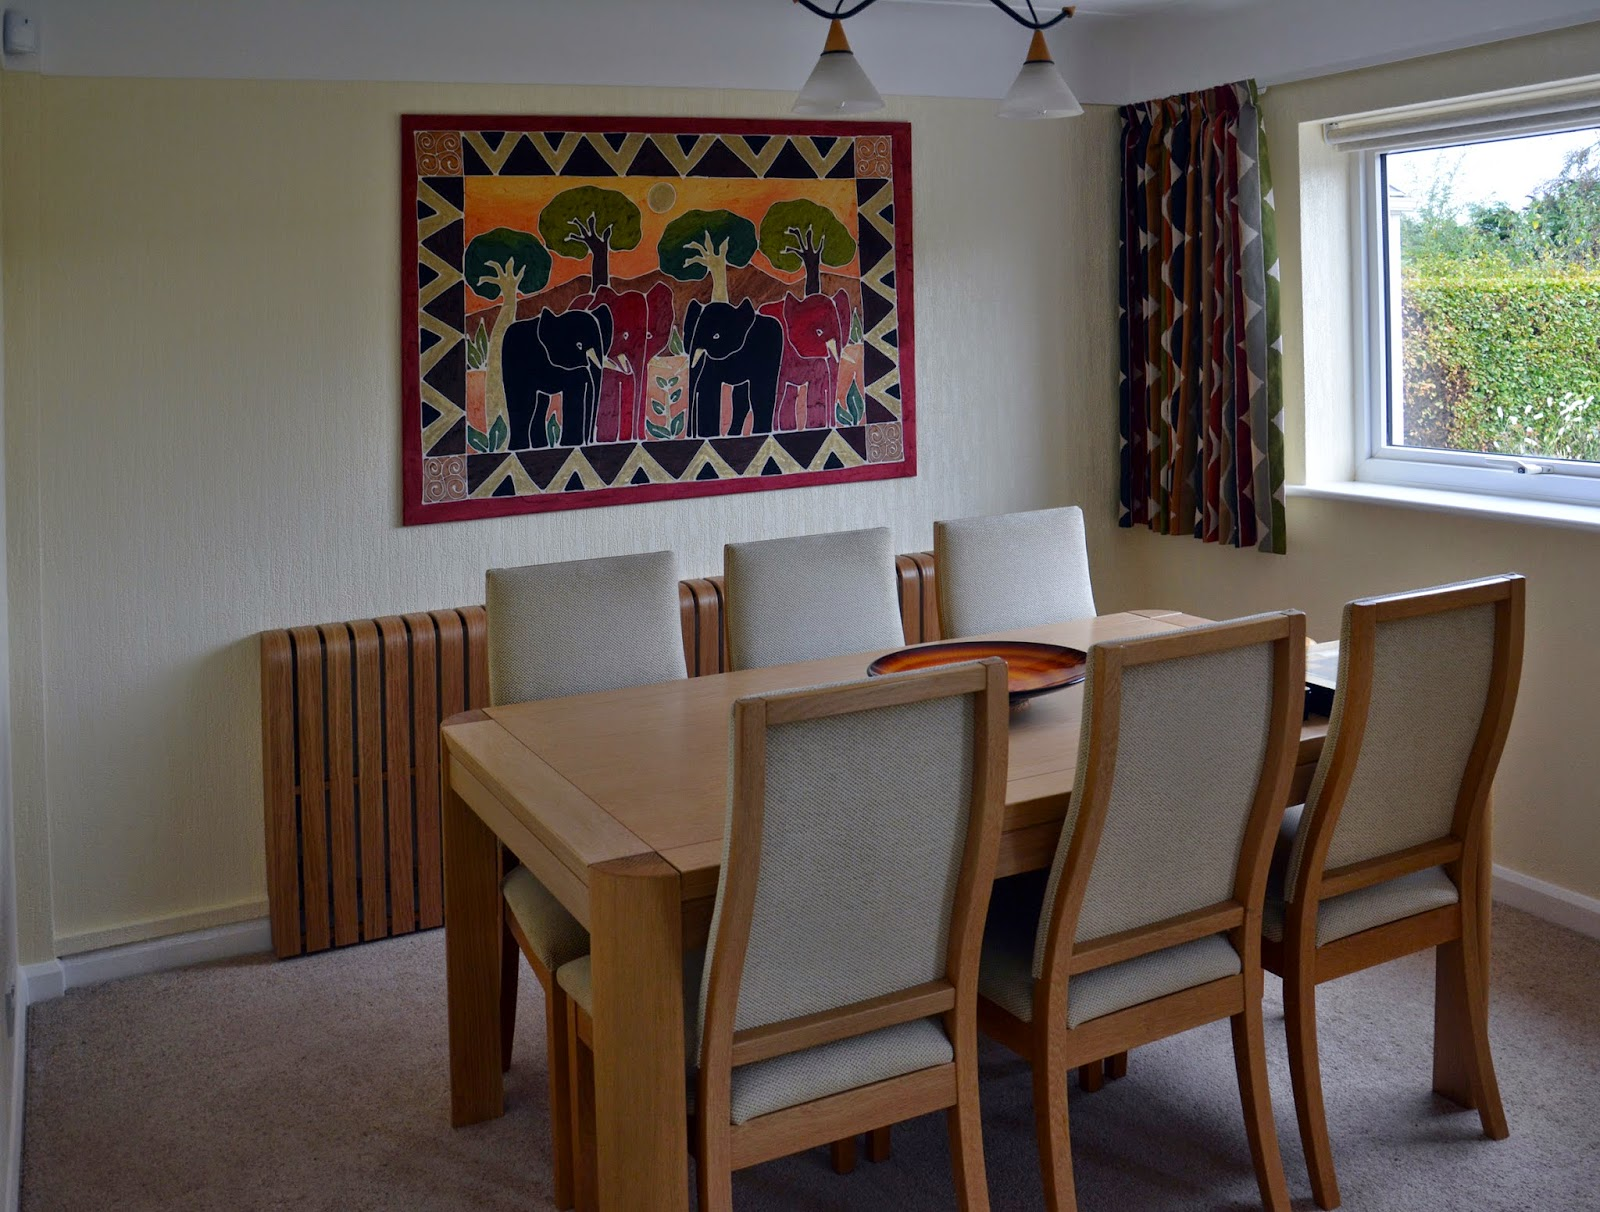 Long oak radiator cover in dinning room